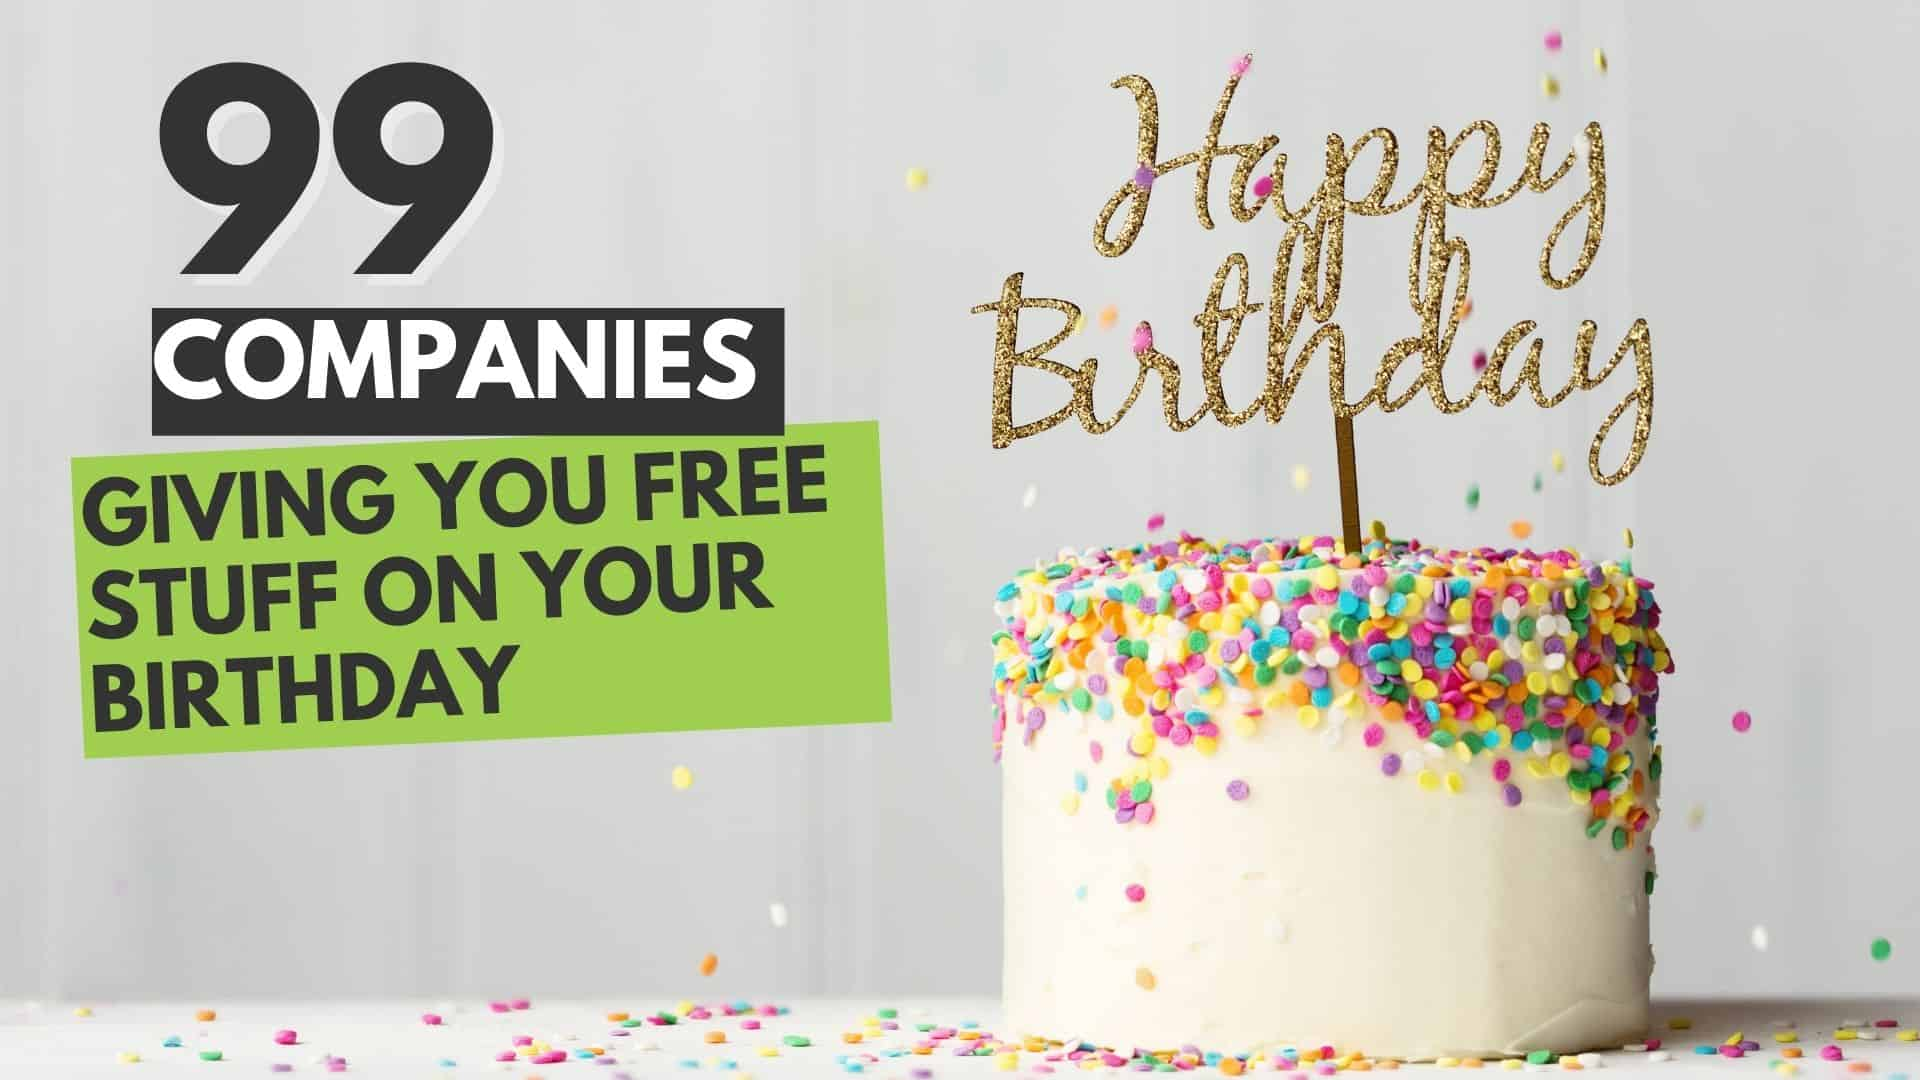 99 Companies With Free Stuff on Your Birthday!